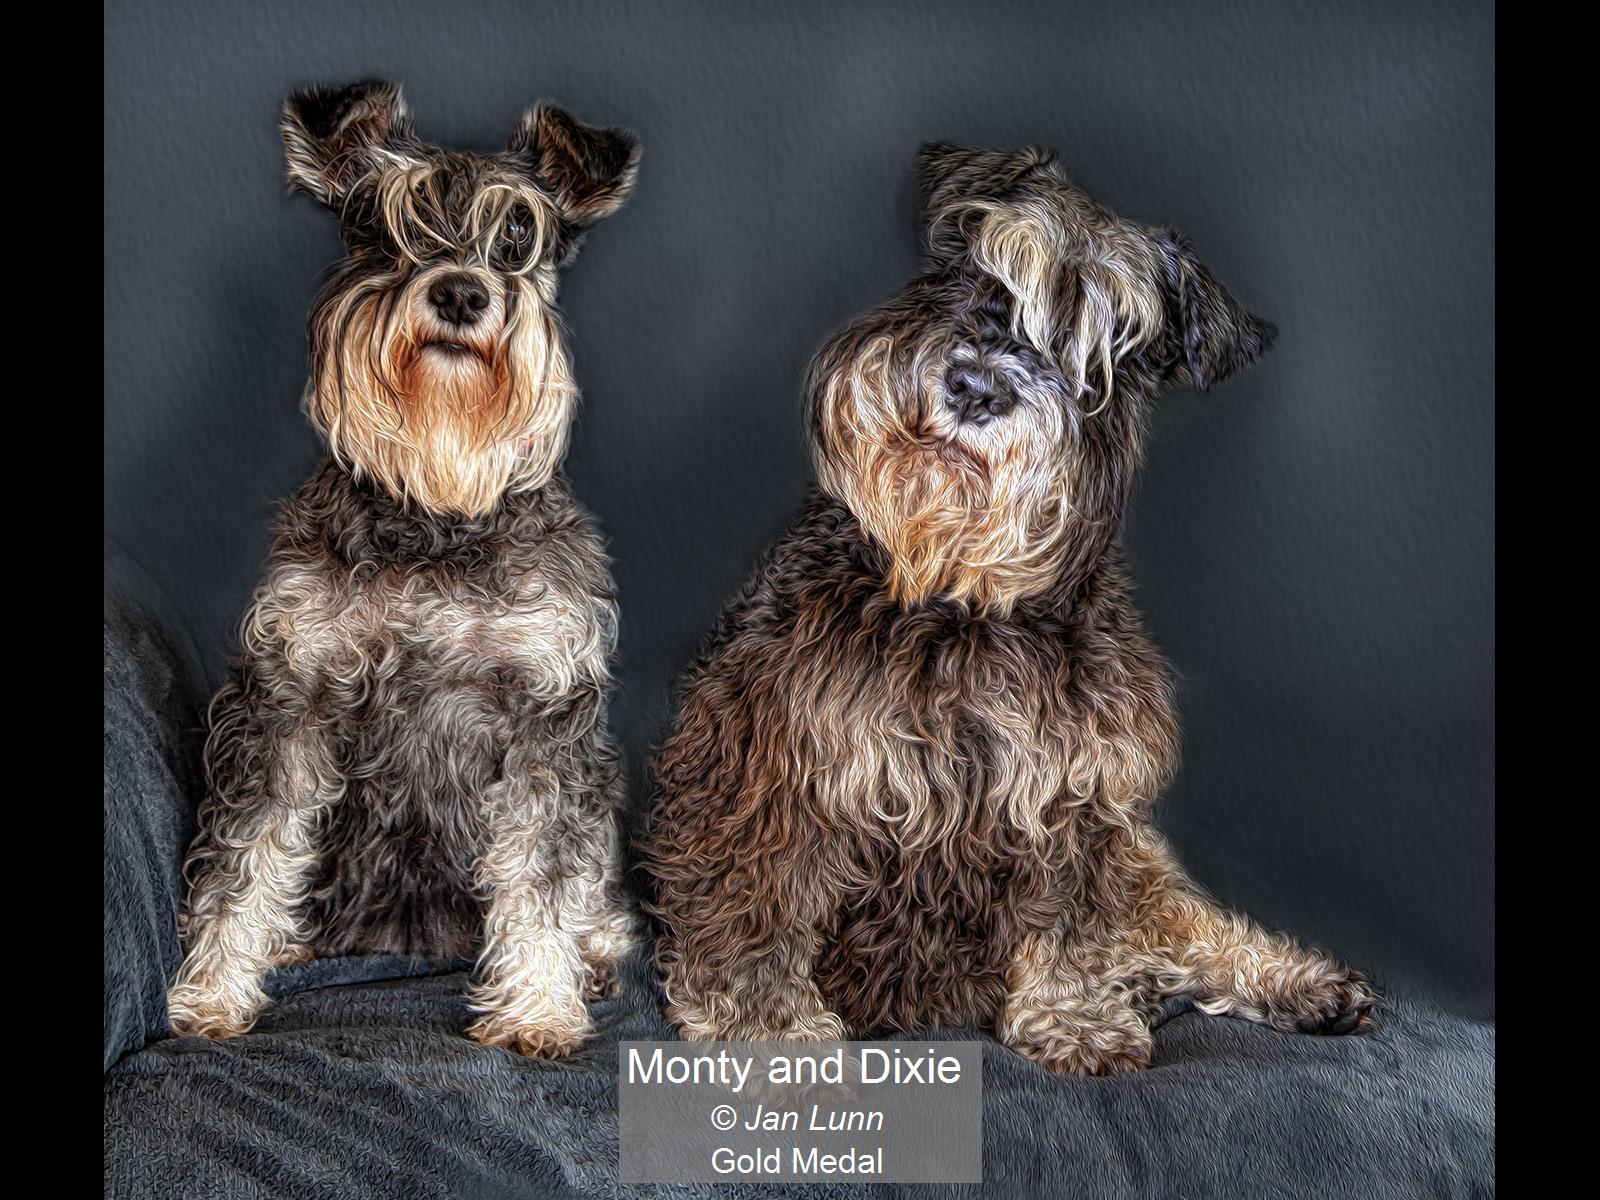 Monty and Dixie_Jan Lunn_Gold